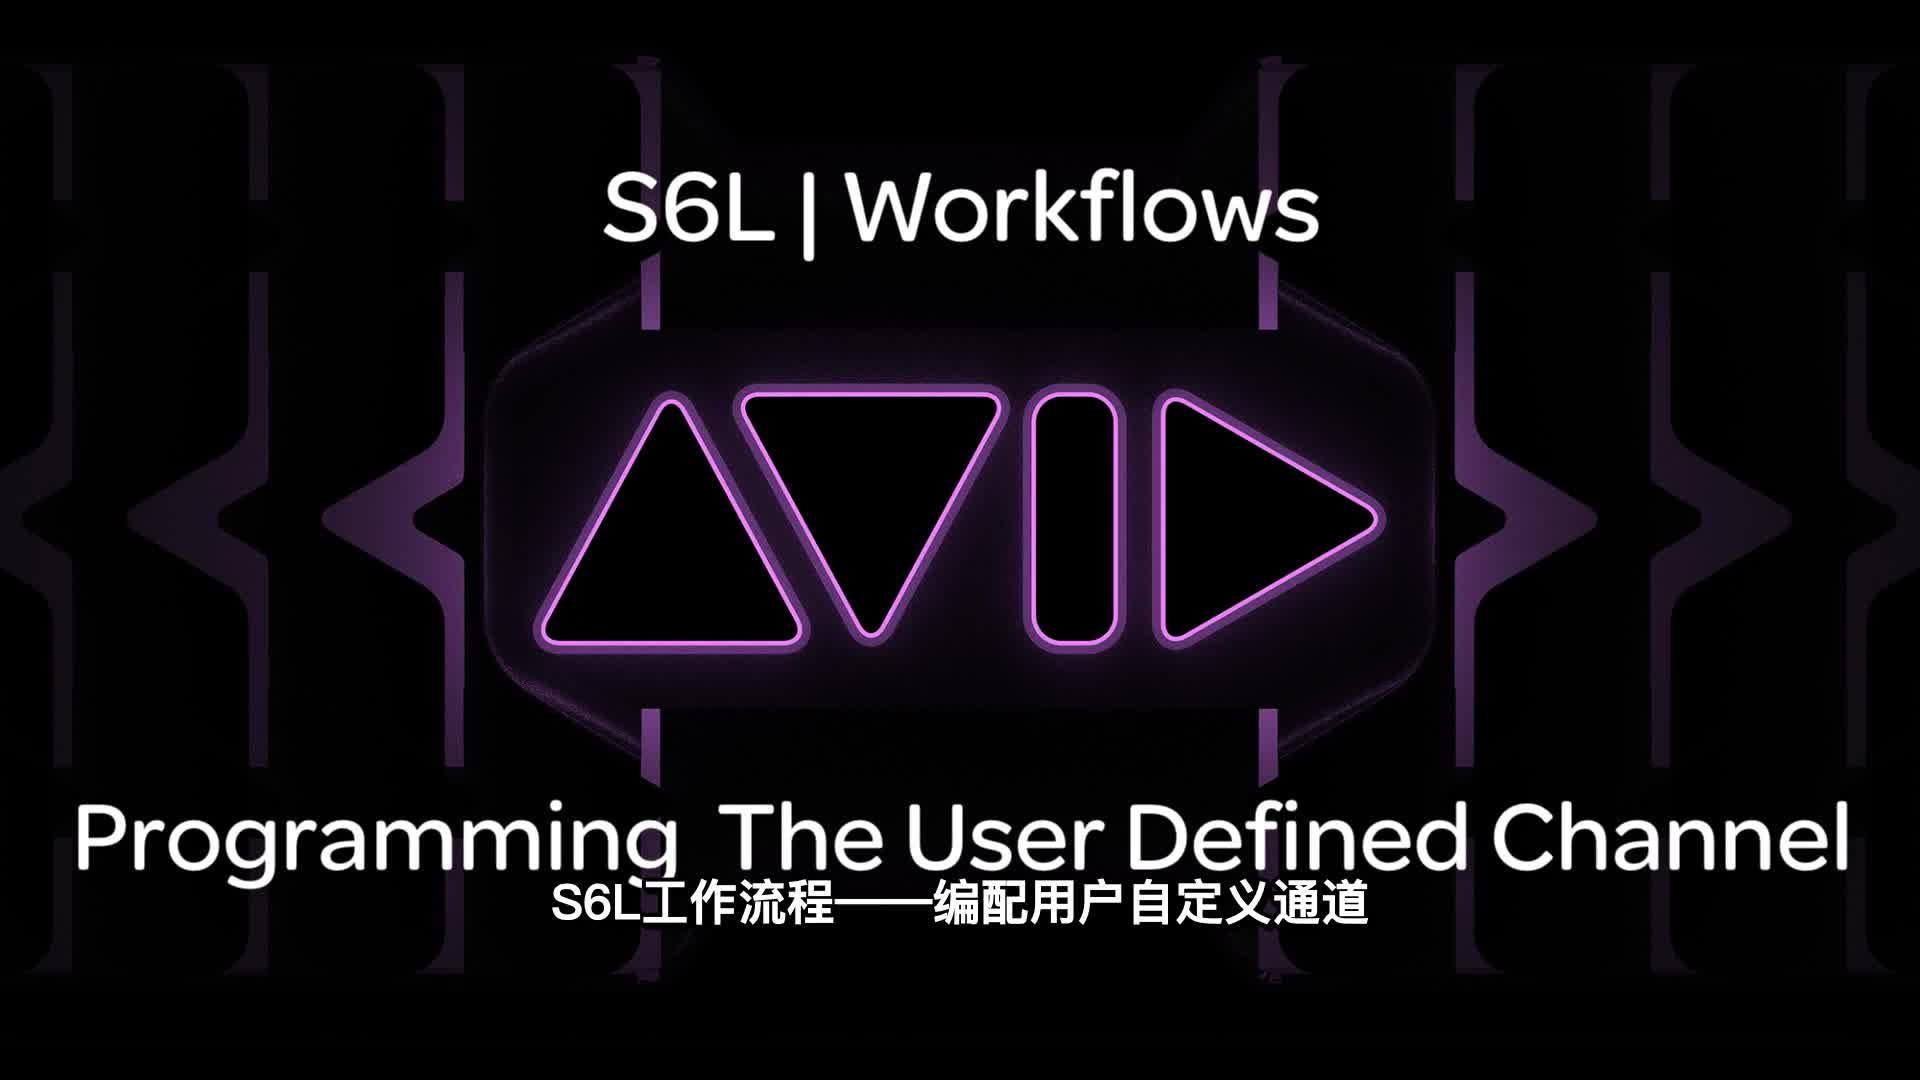 11 VENUE  S6L|Workflows Programming The User Defined Channel